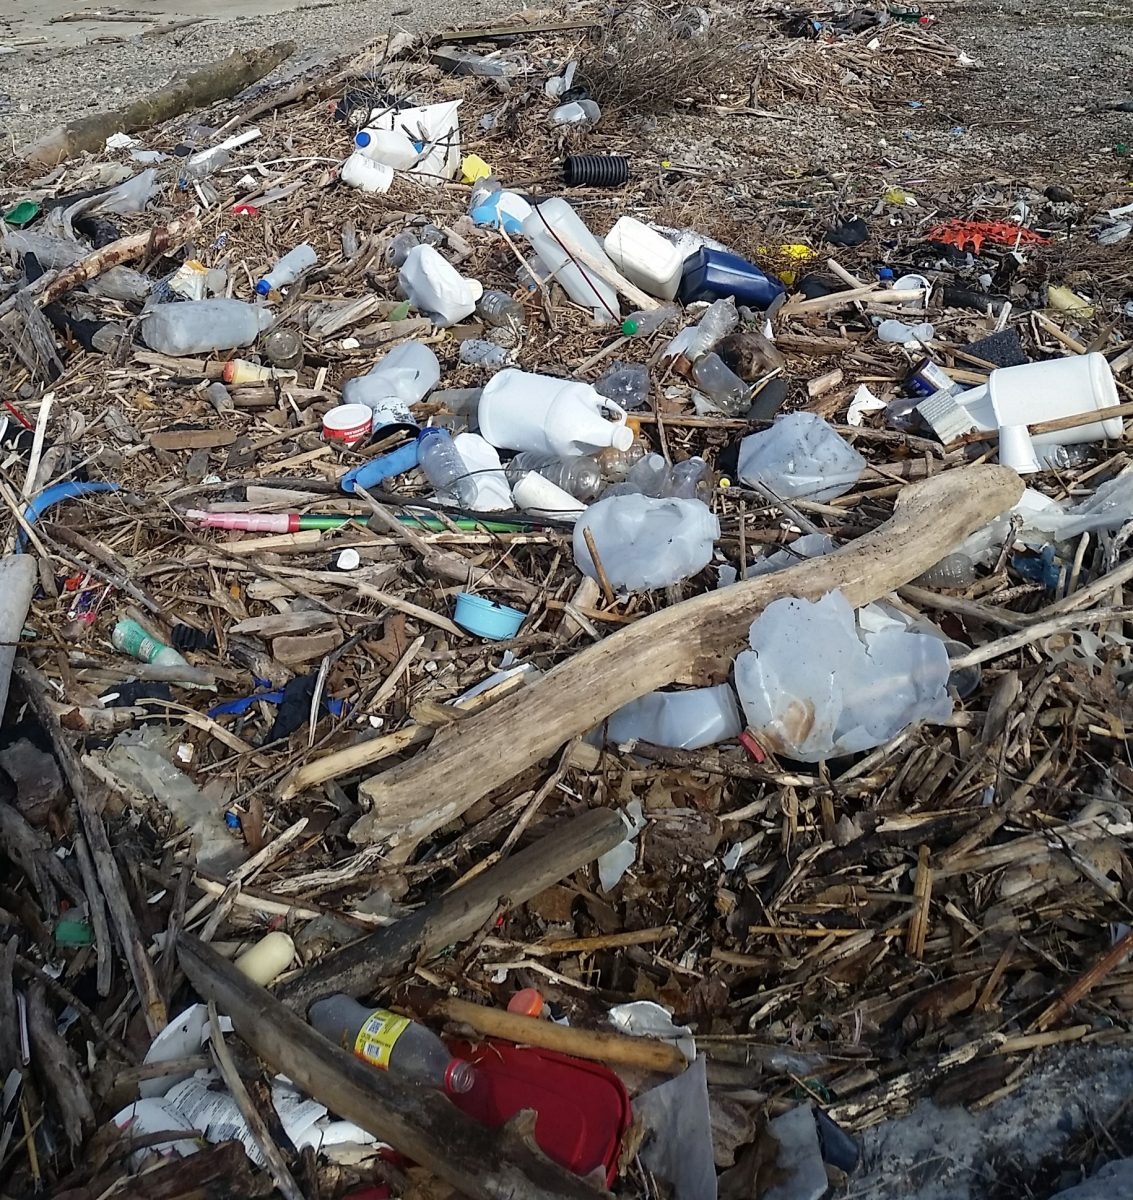 Plastic litter becomes Great Lakes plastic pollution